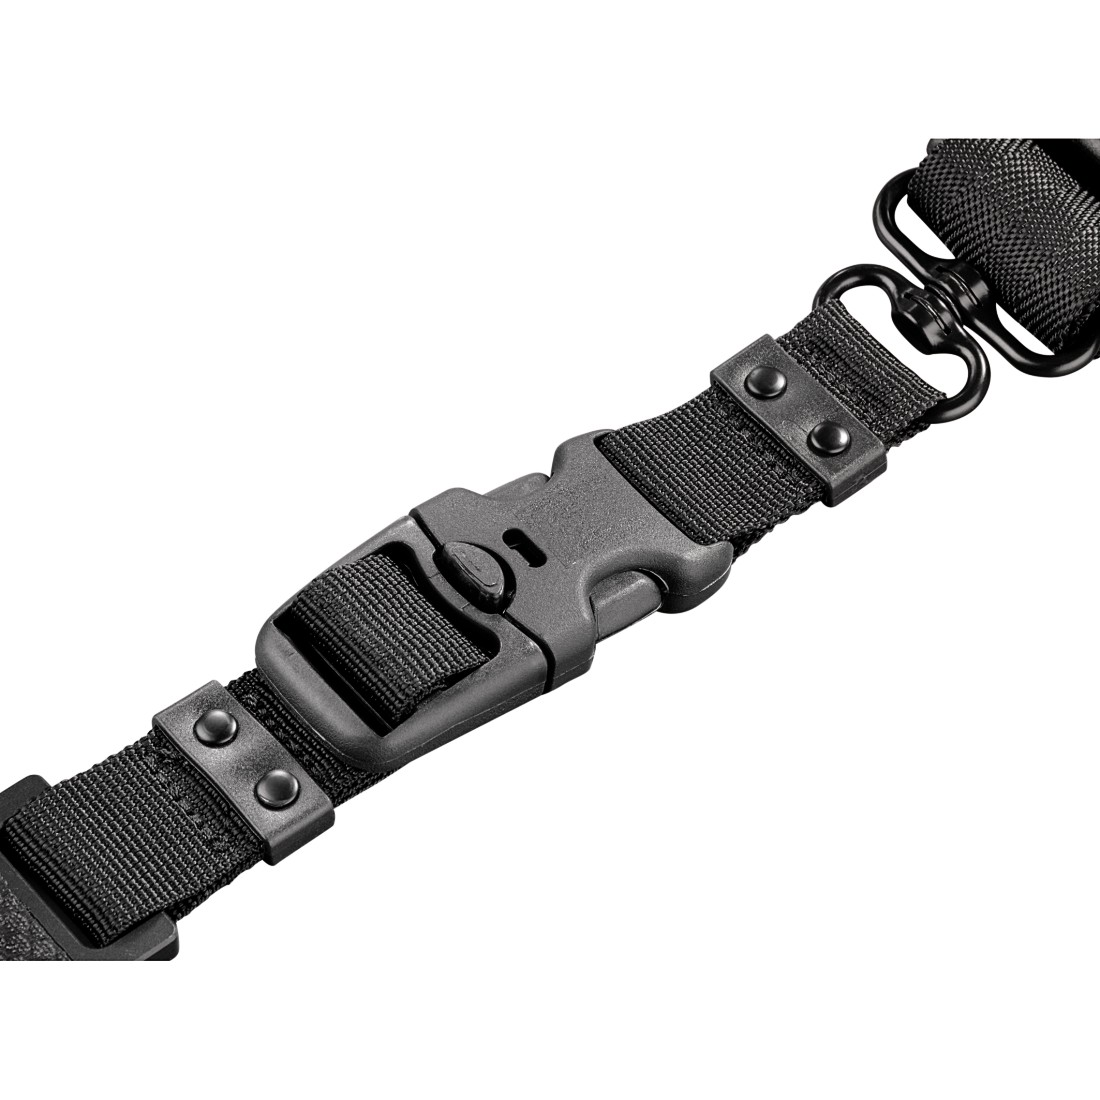 dex5 High-Res Detail 5 - Hama, Quick Shoot Strap Carrying Strap for SLR Cameras